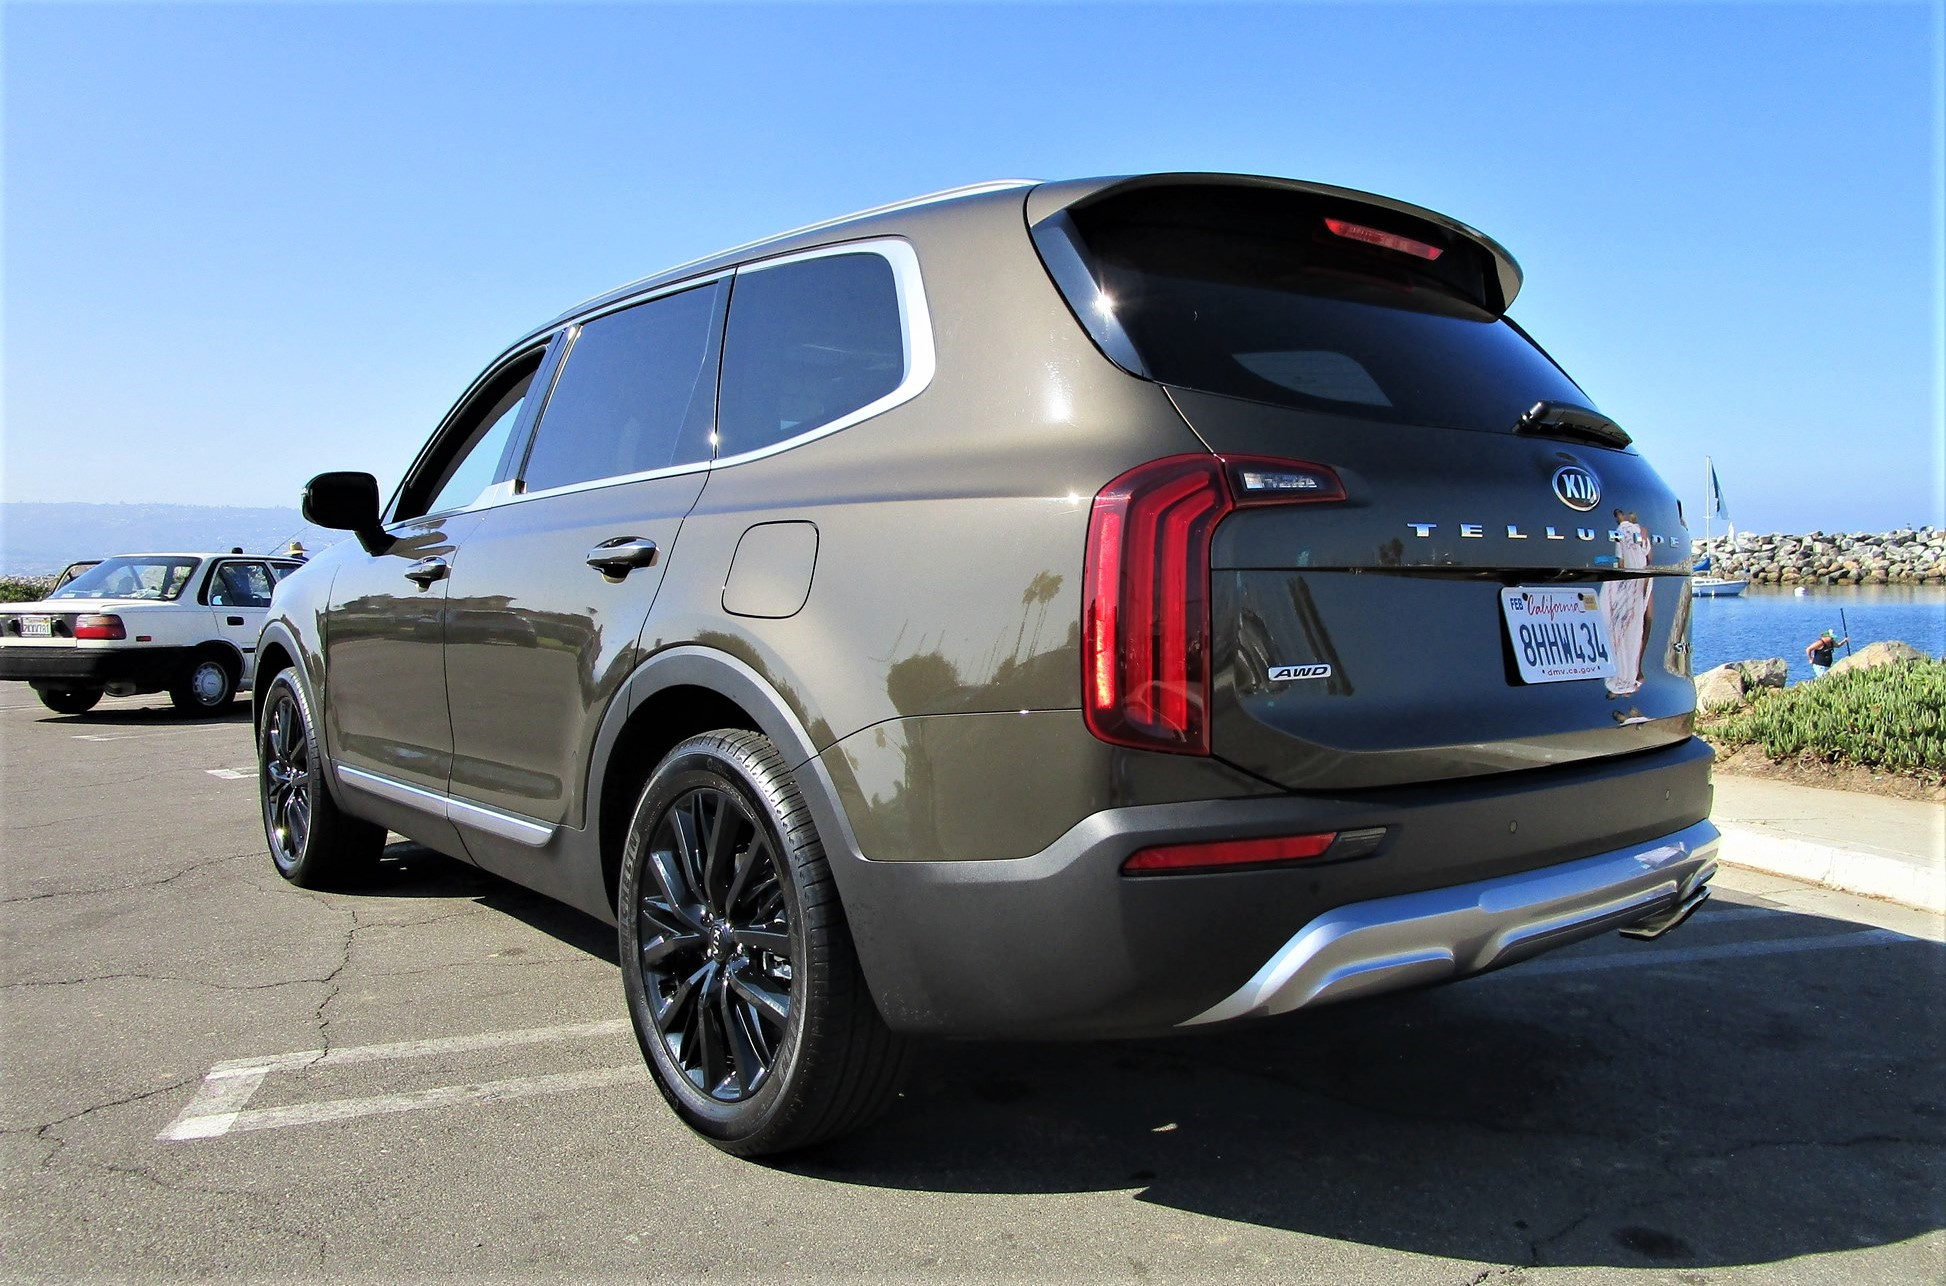 2020 kia telluride sx v6 awd - road test review